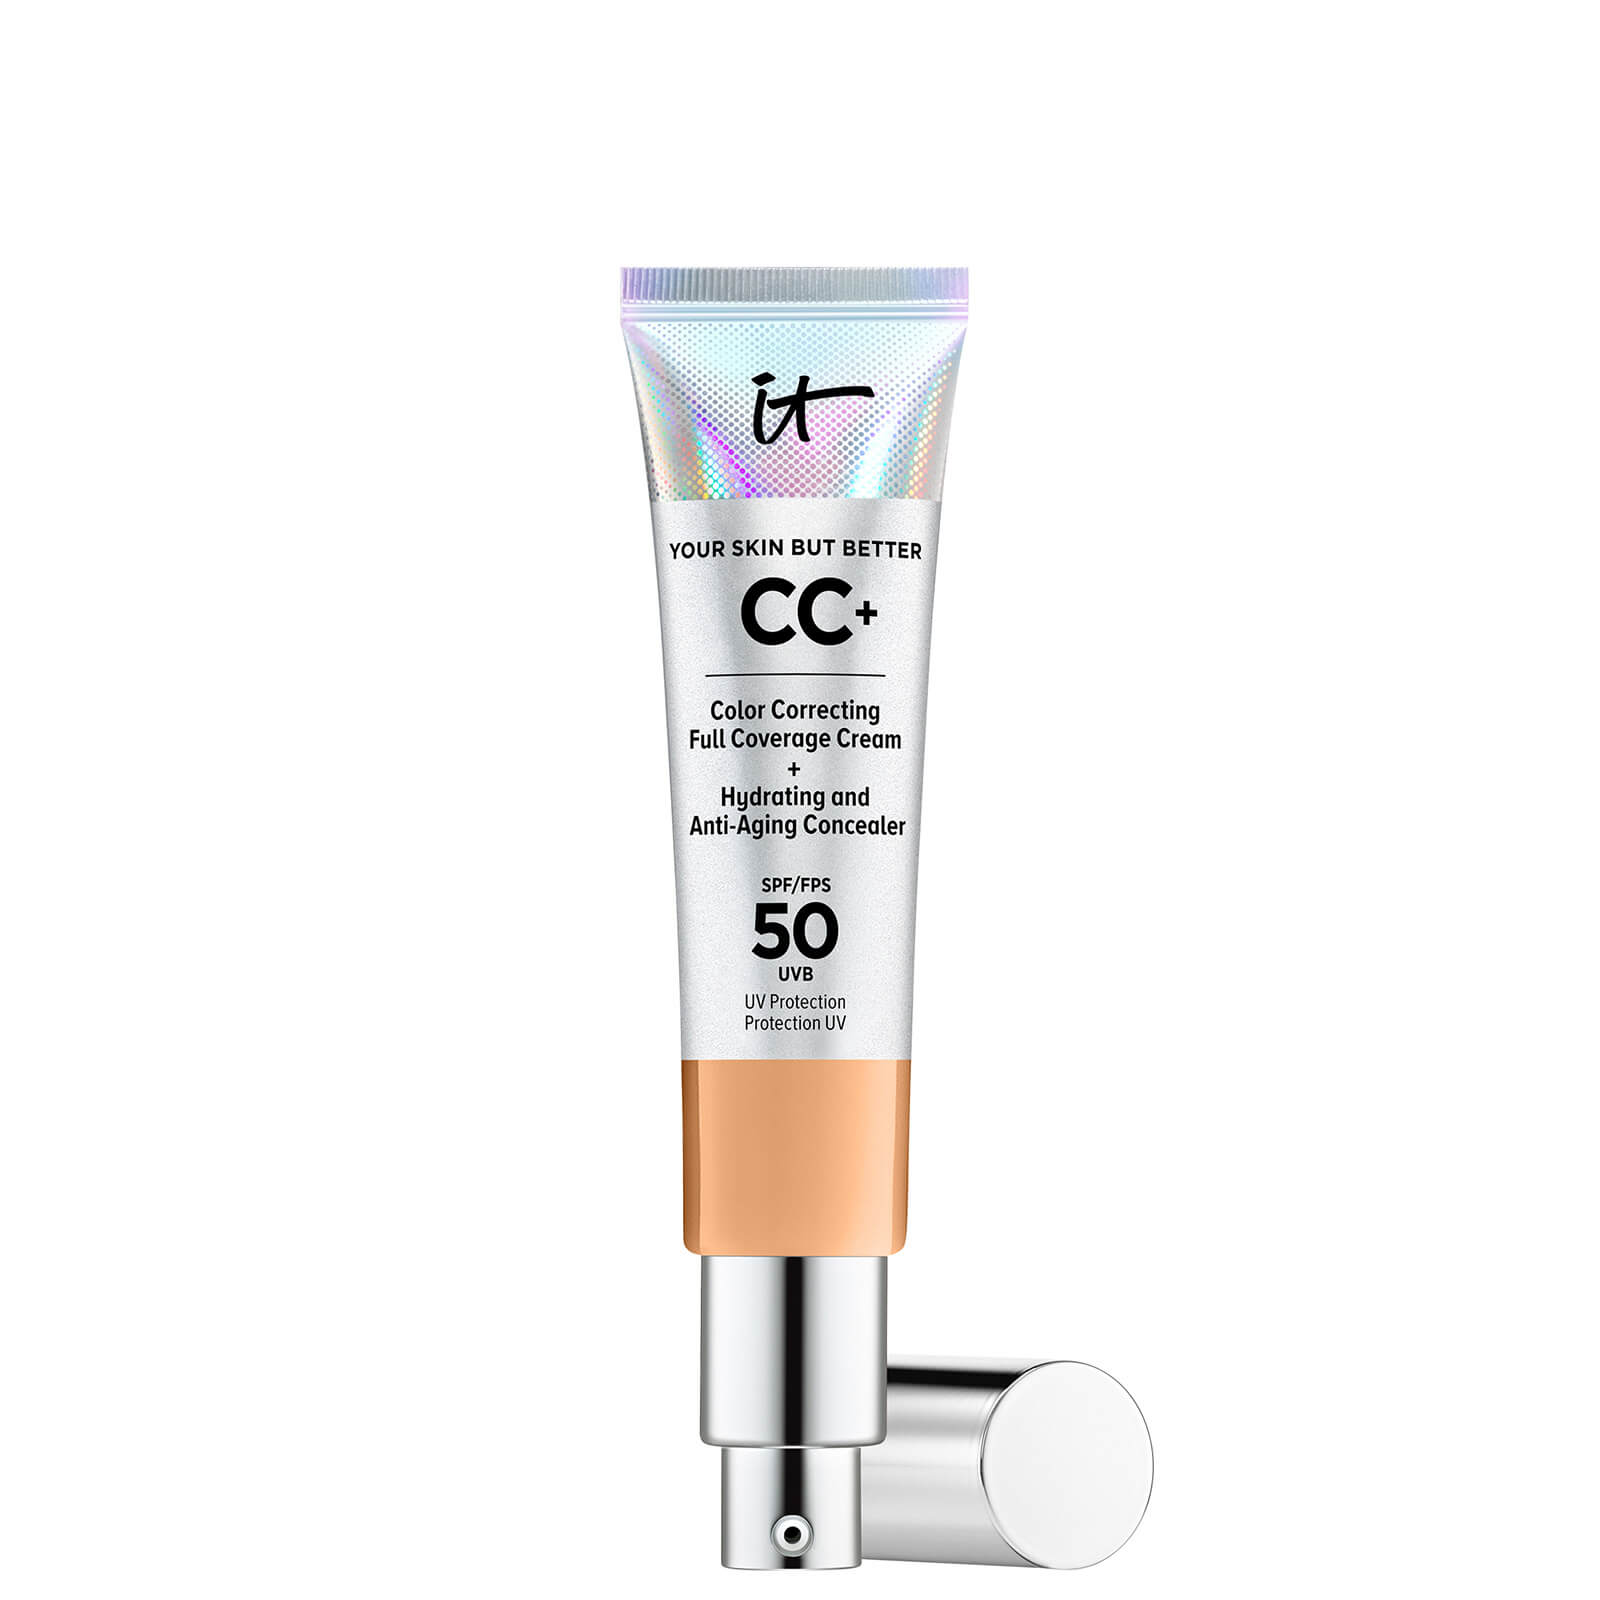 Купить IT Cosmetics Your Skin But Better CC+ Cream with SPF50 32ml (Various Shades) - Neutral Tan